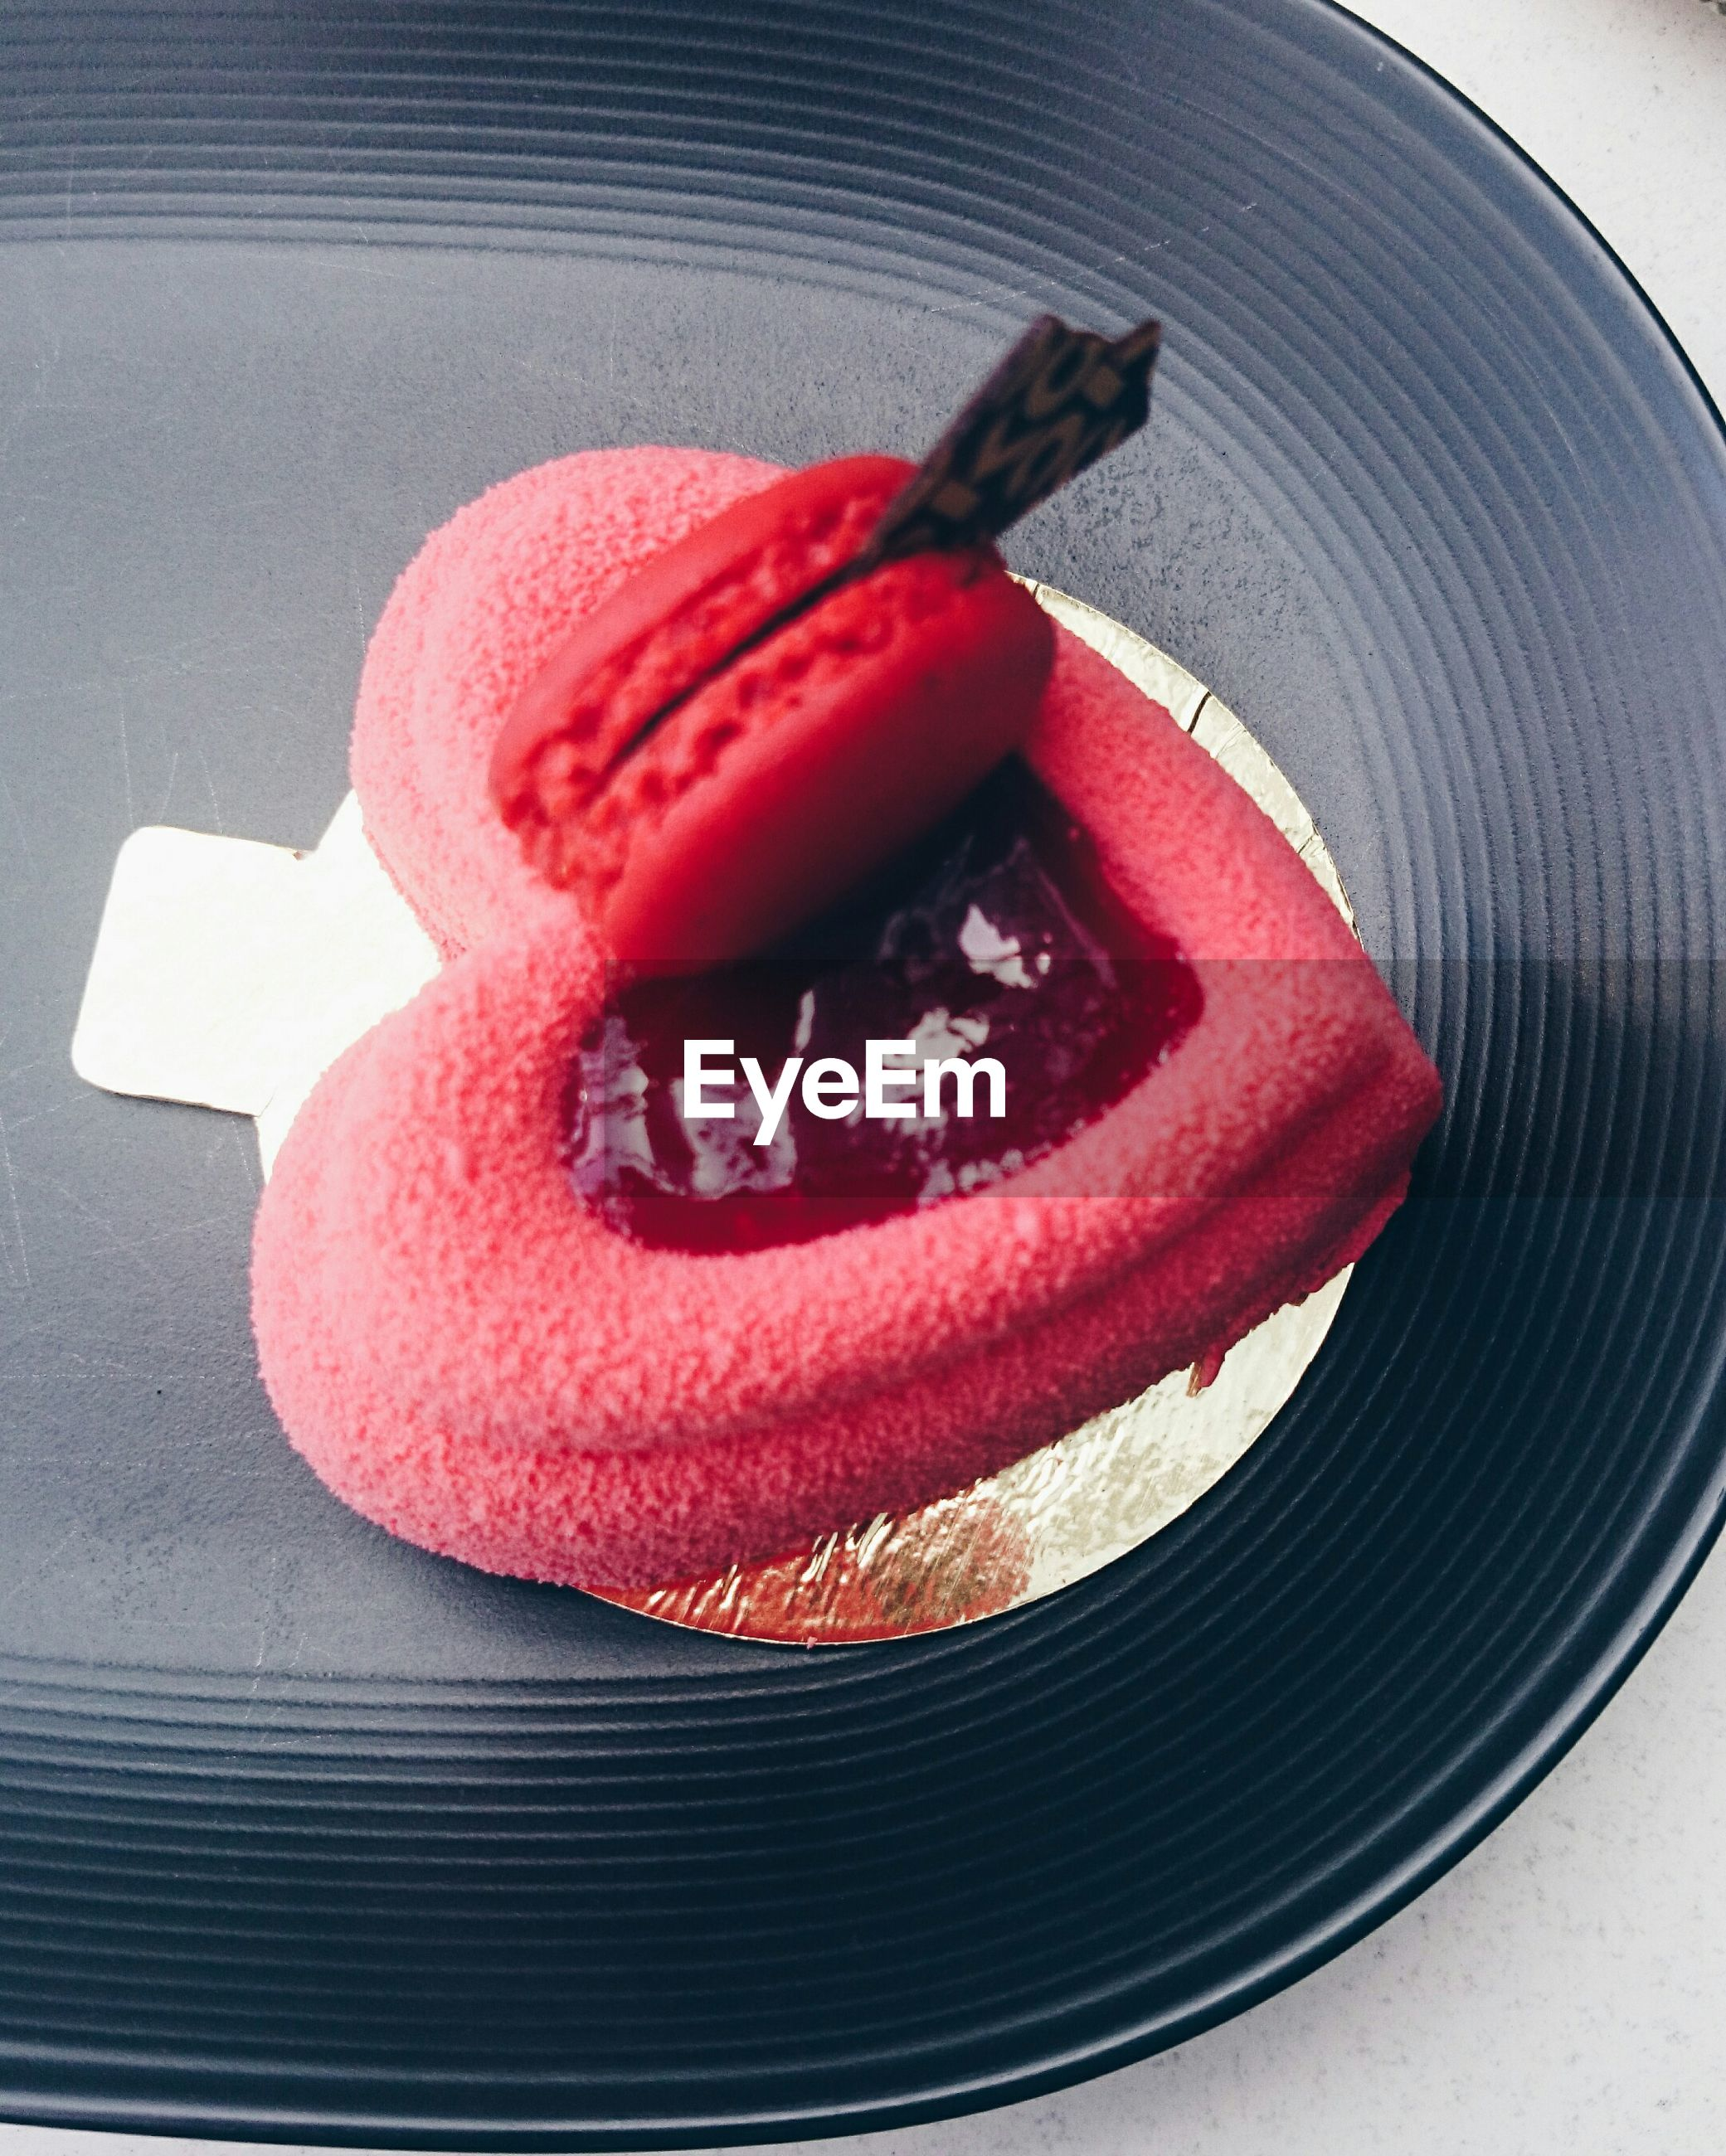 High angle view of dessert served in tray on table